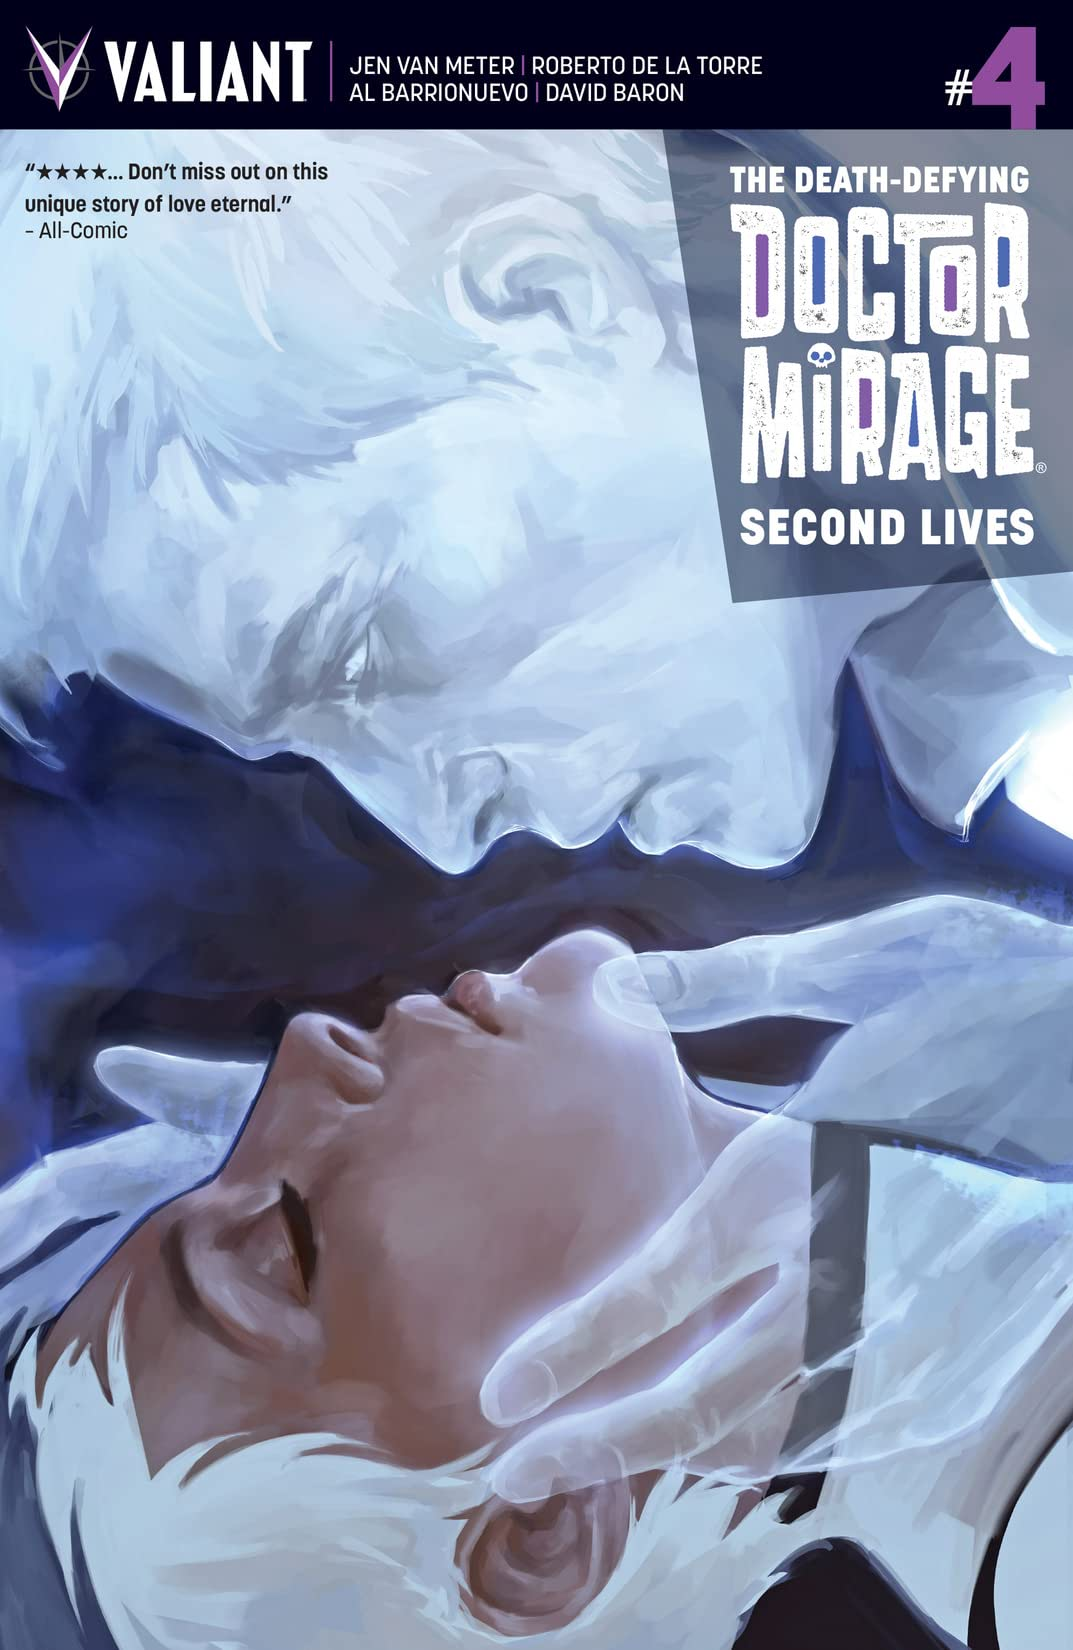 The Death-Defying Dr. Mirage: Second Lives #4: Digital Exclusives Edition